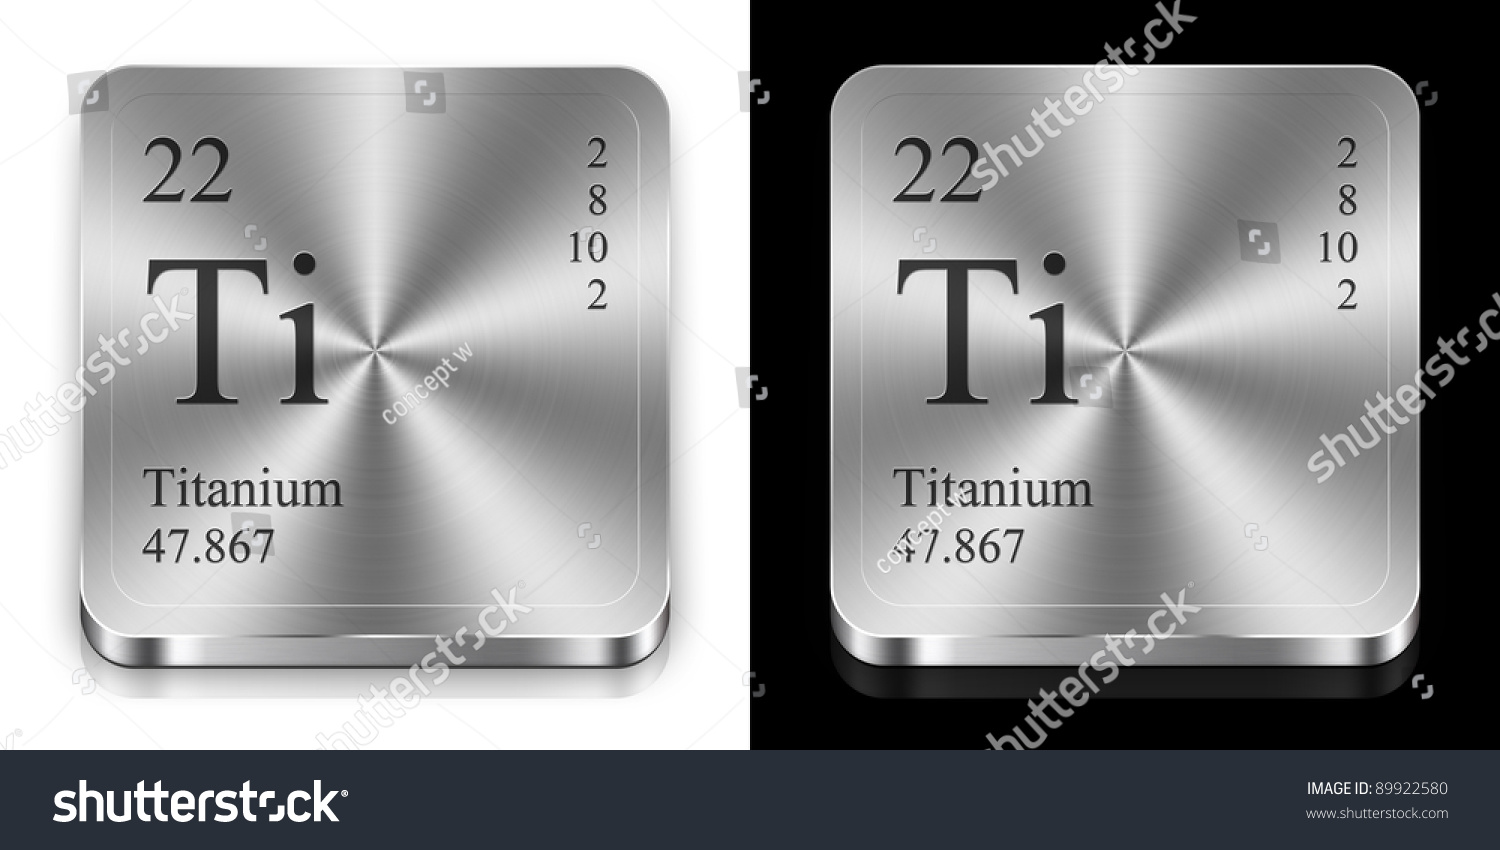 Titanium element periodic table two metal stock illustration titanium element of the periodic table two metal web buttons gamestrikefo Choice Image